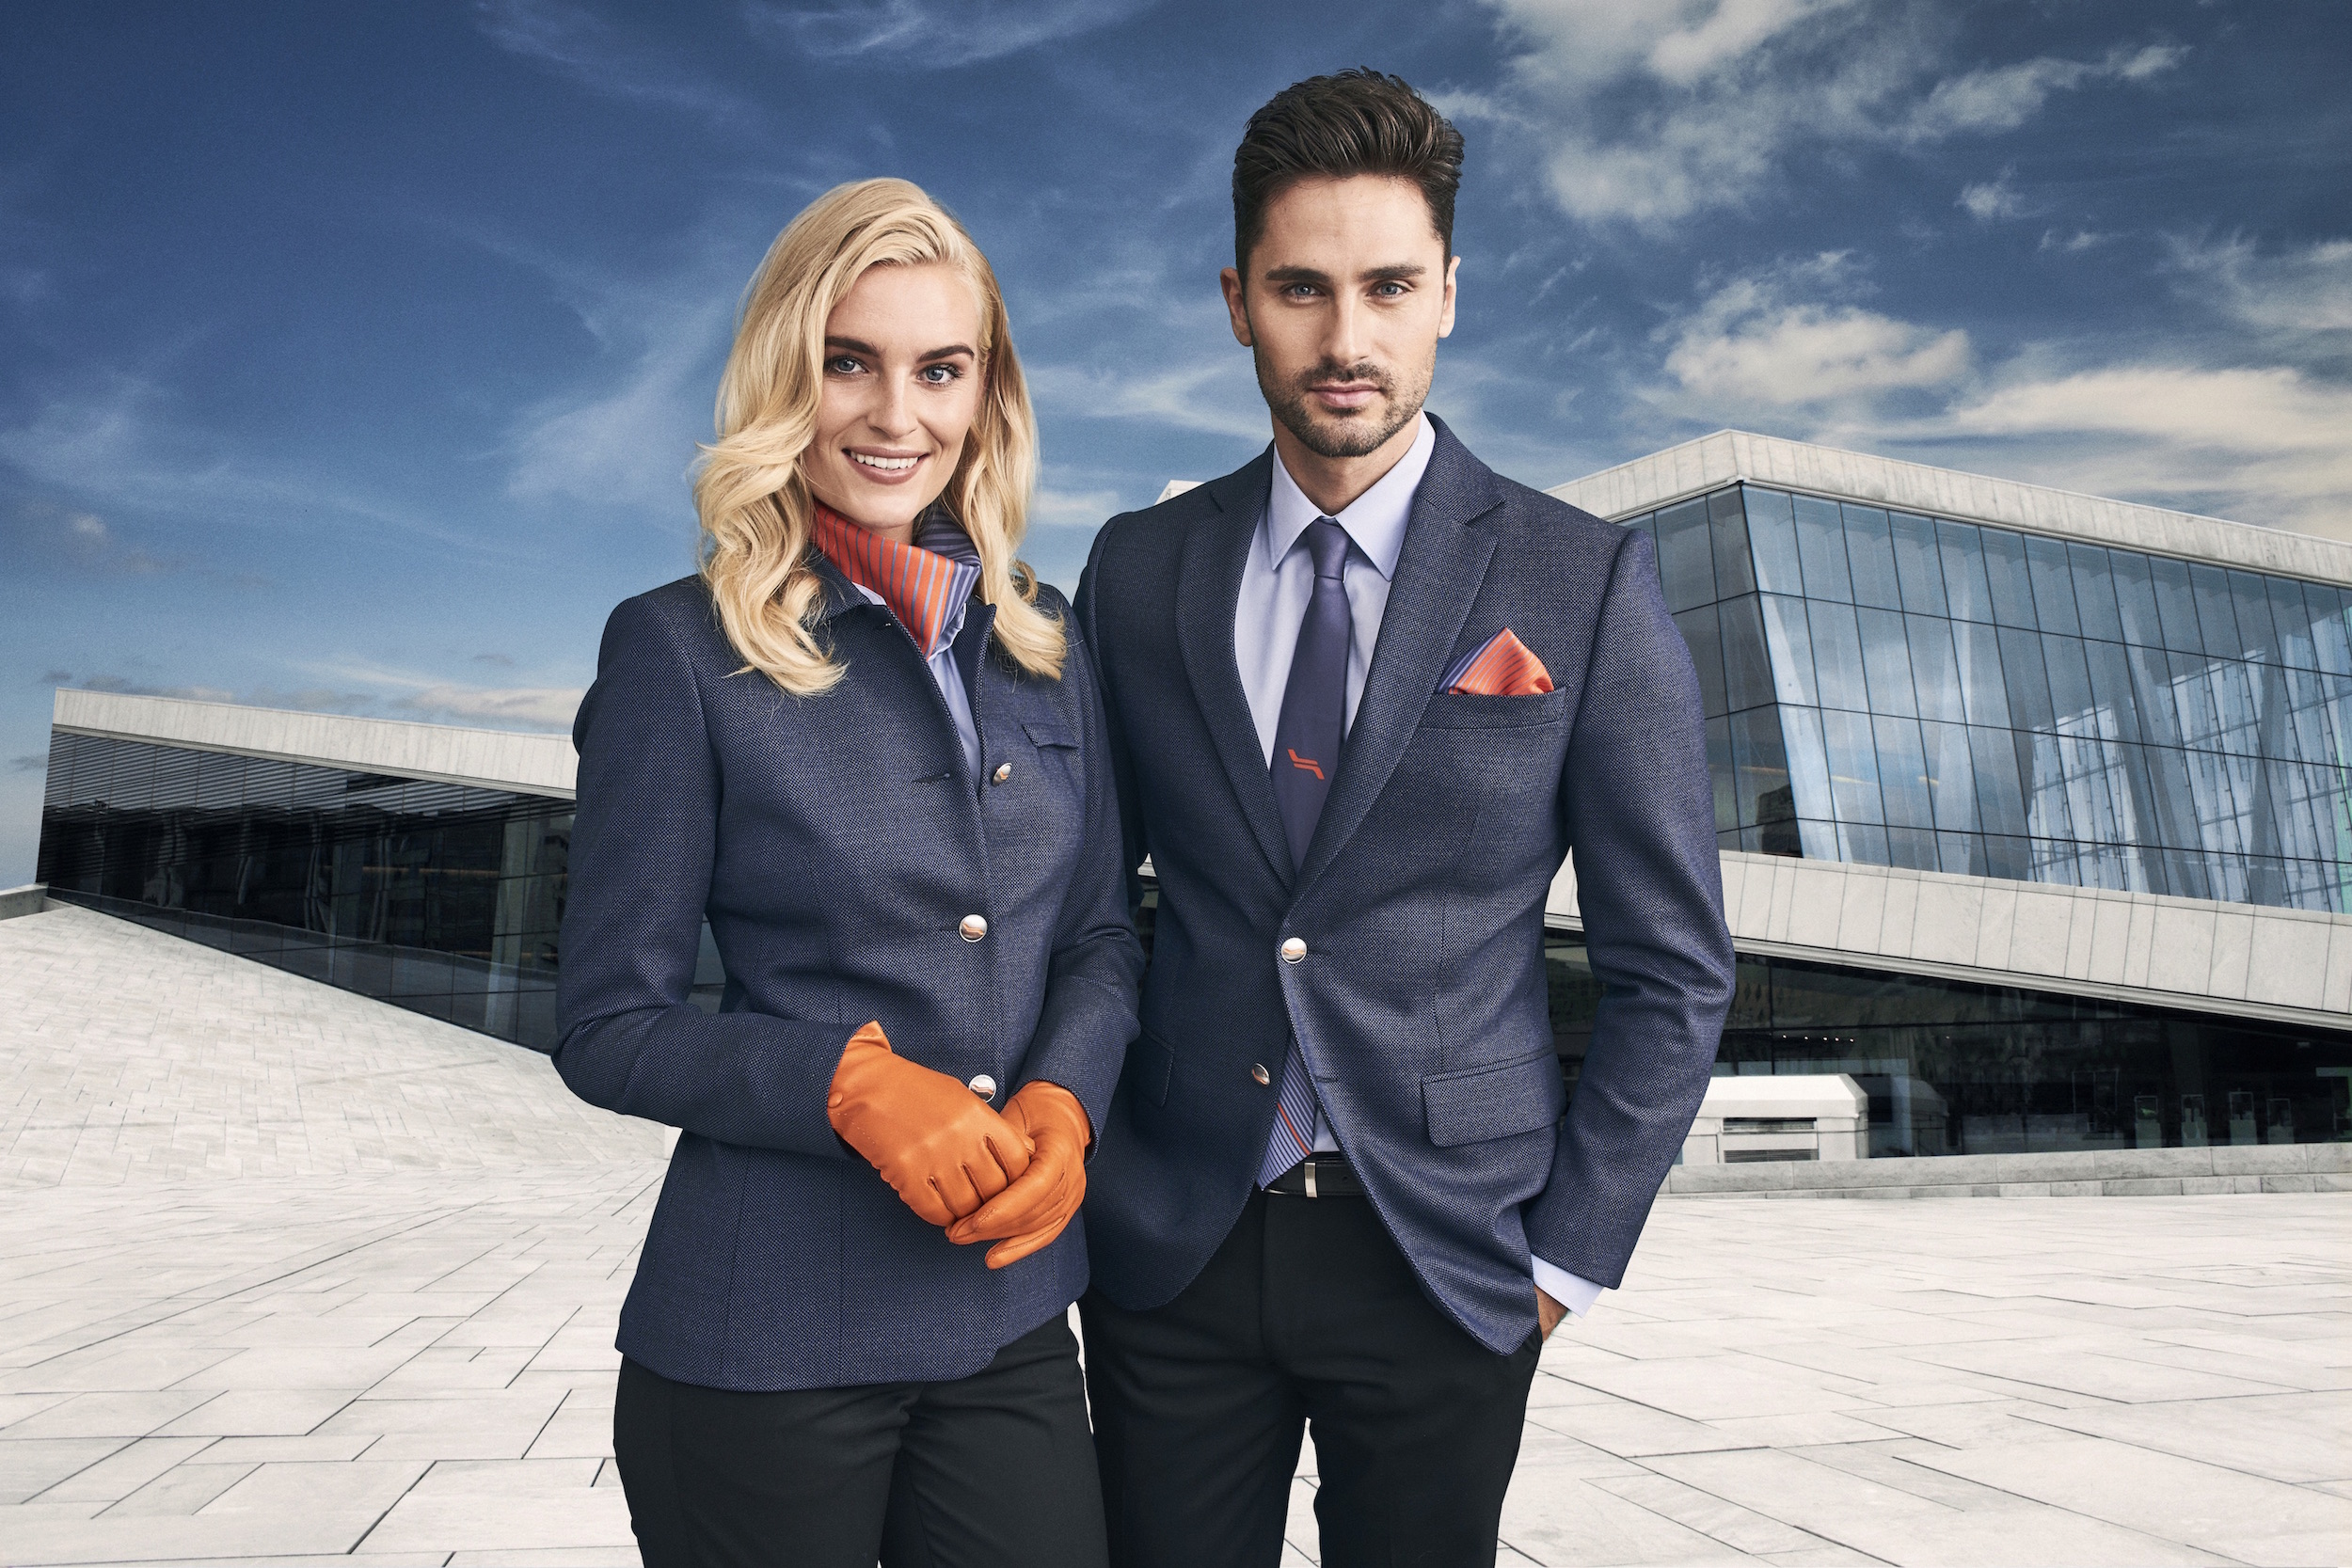 Ground Staff Uniforms: clothing for airport staff